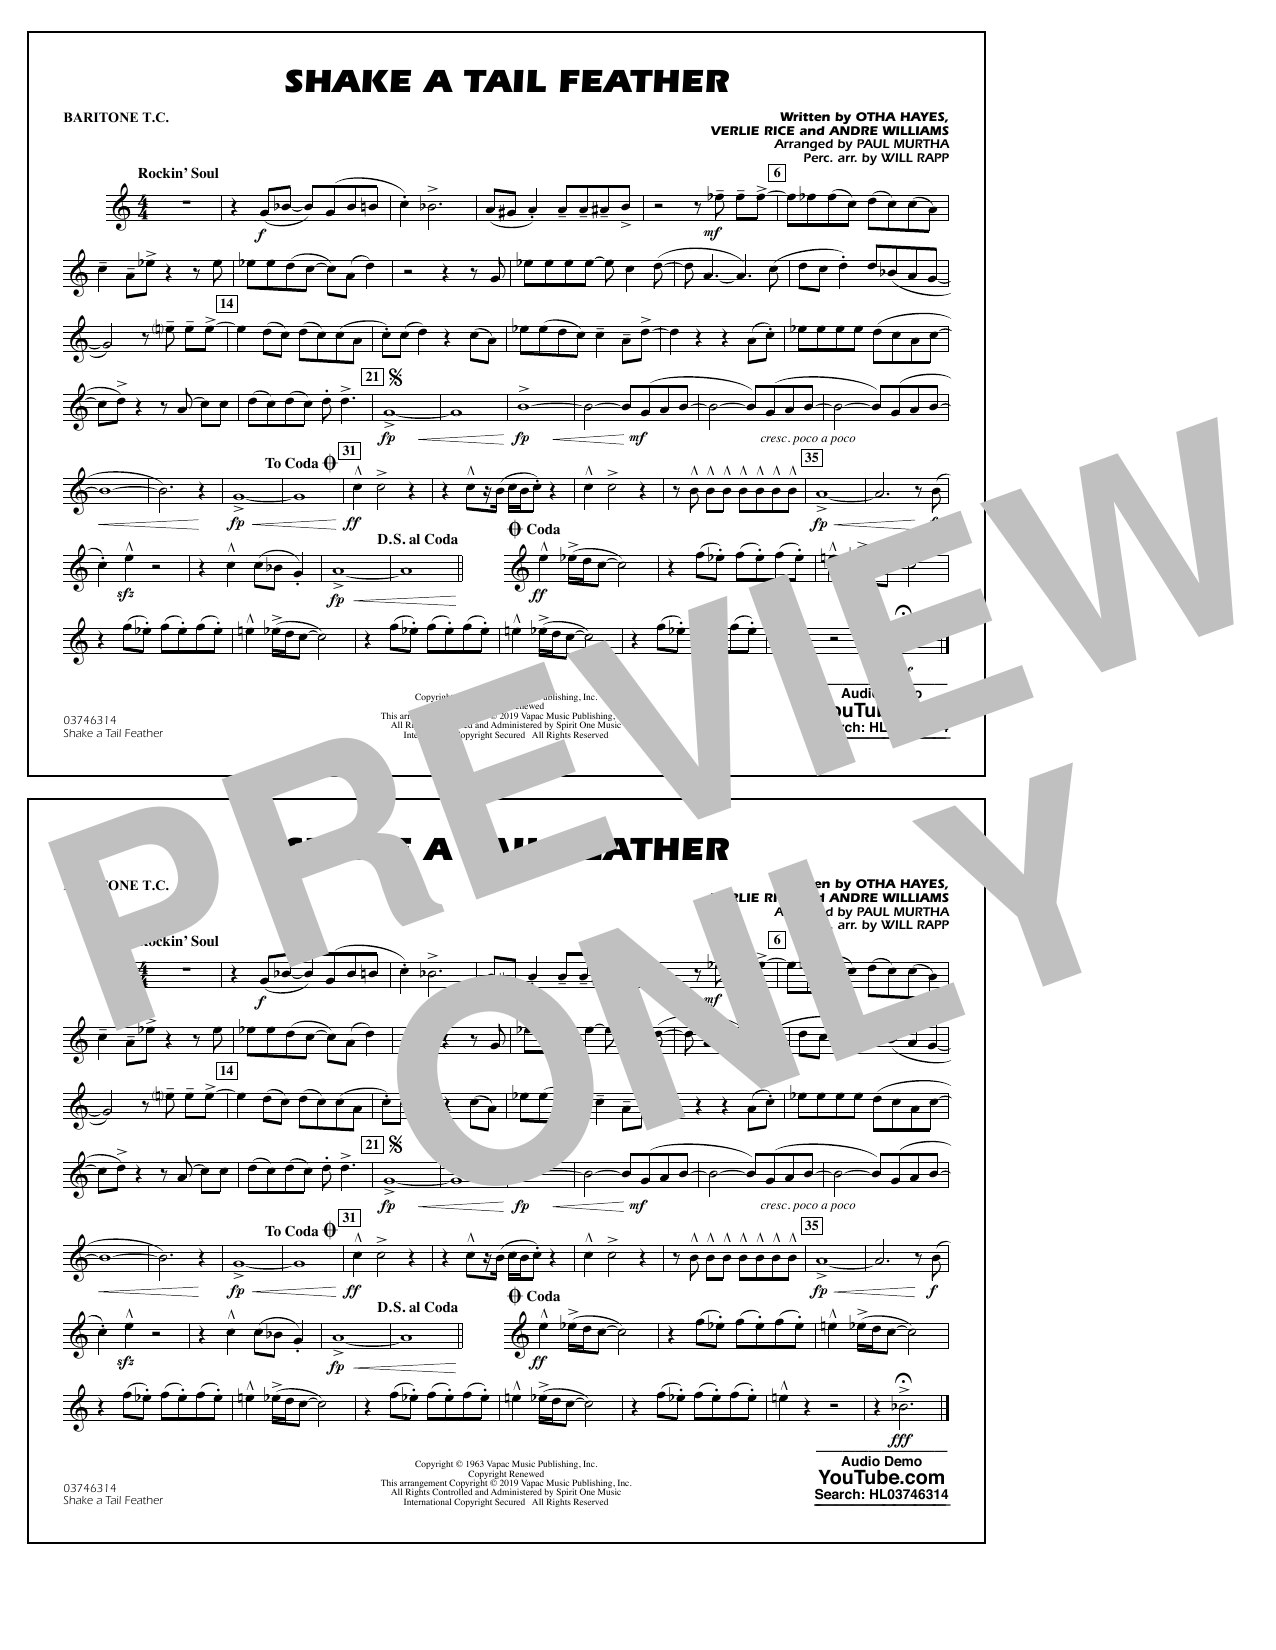 Ray Charles Shake a Tail Feather (arr. Paul Murtha) - Baritone T.C. sheet music notes and chords. Download Printable PDF.